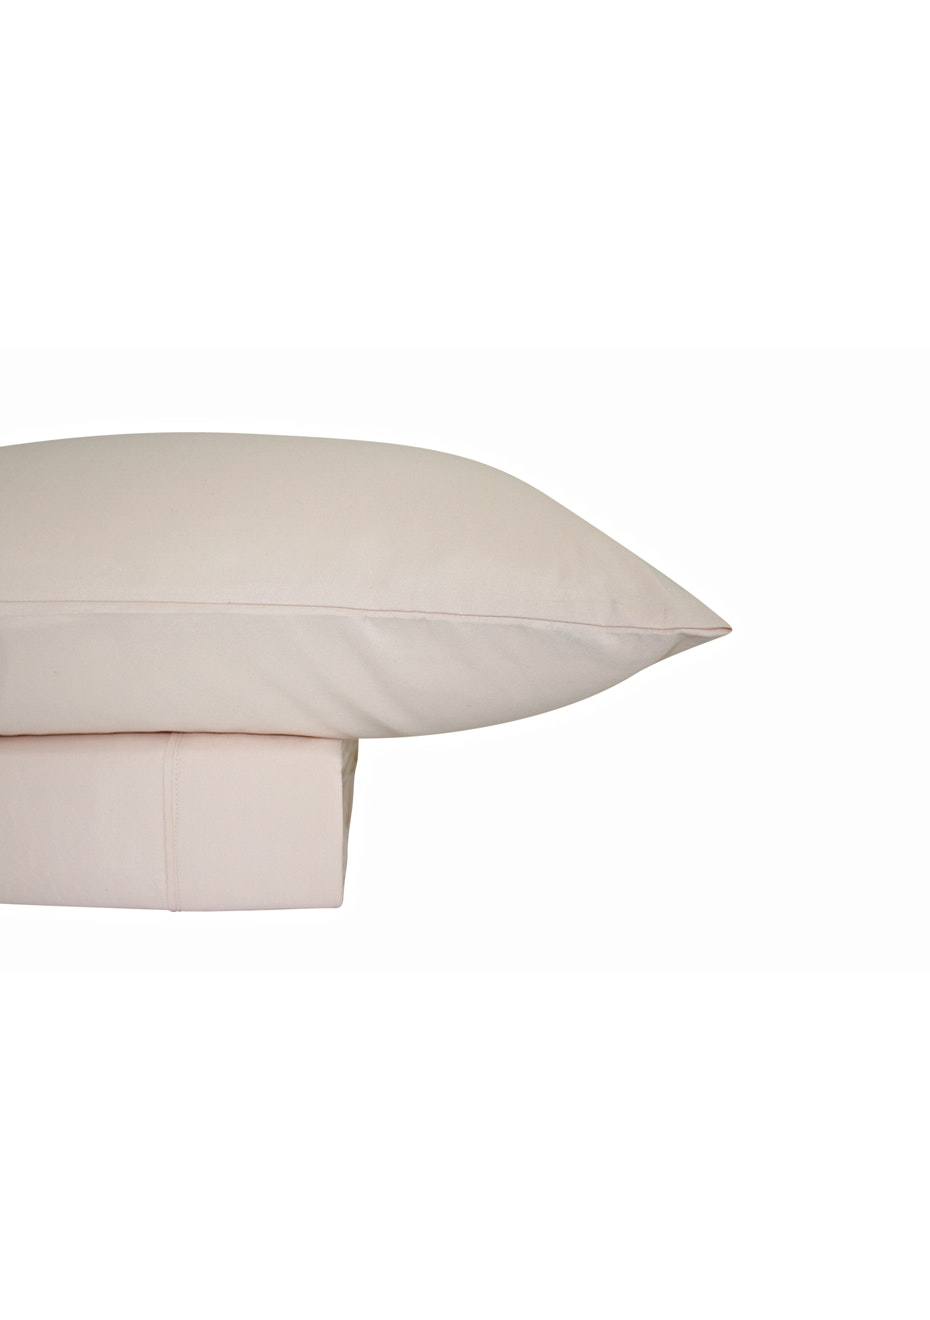 Thermal Flannel Sheet Sets - Sand - King Single Bed